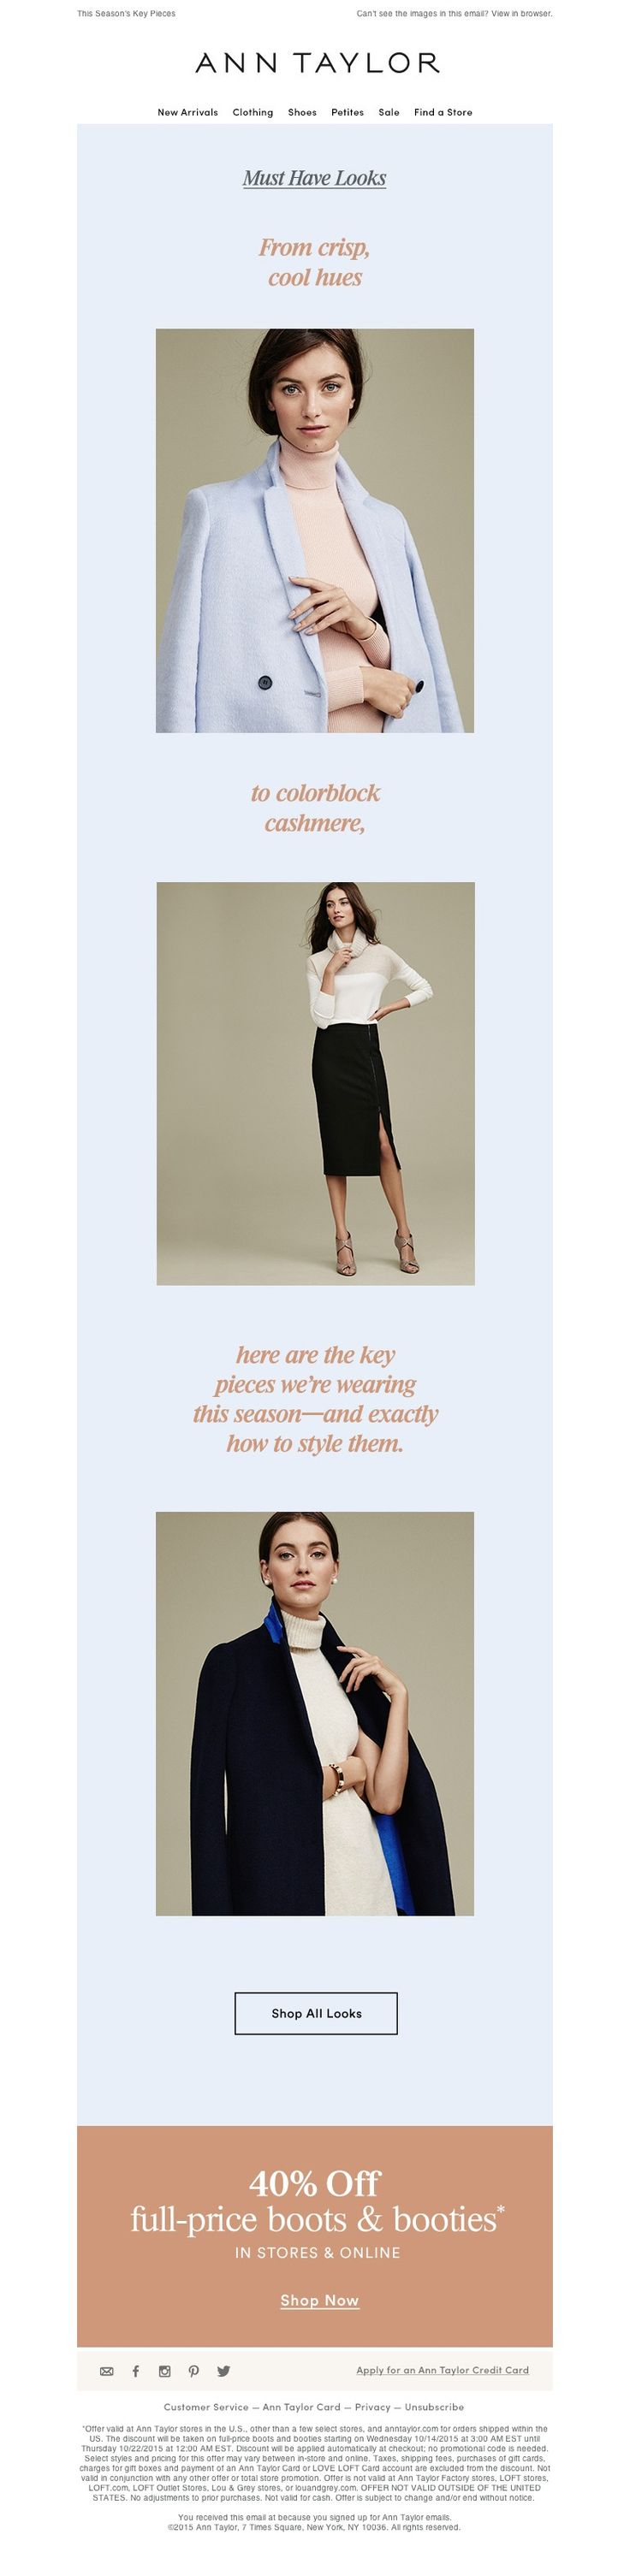 Ann Taylor - See Our Latest Must Have Looks